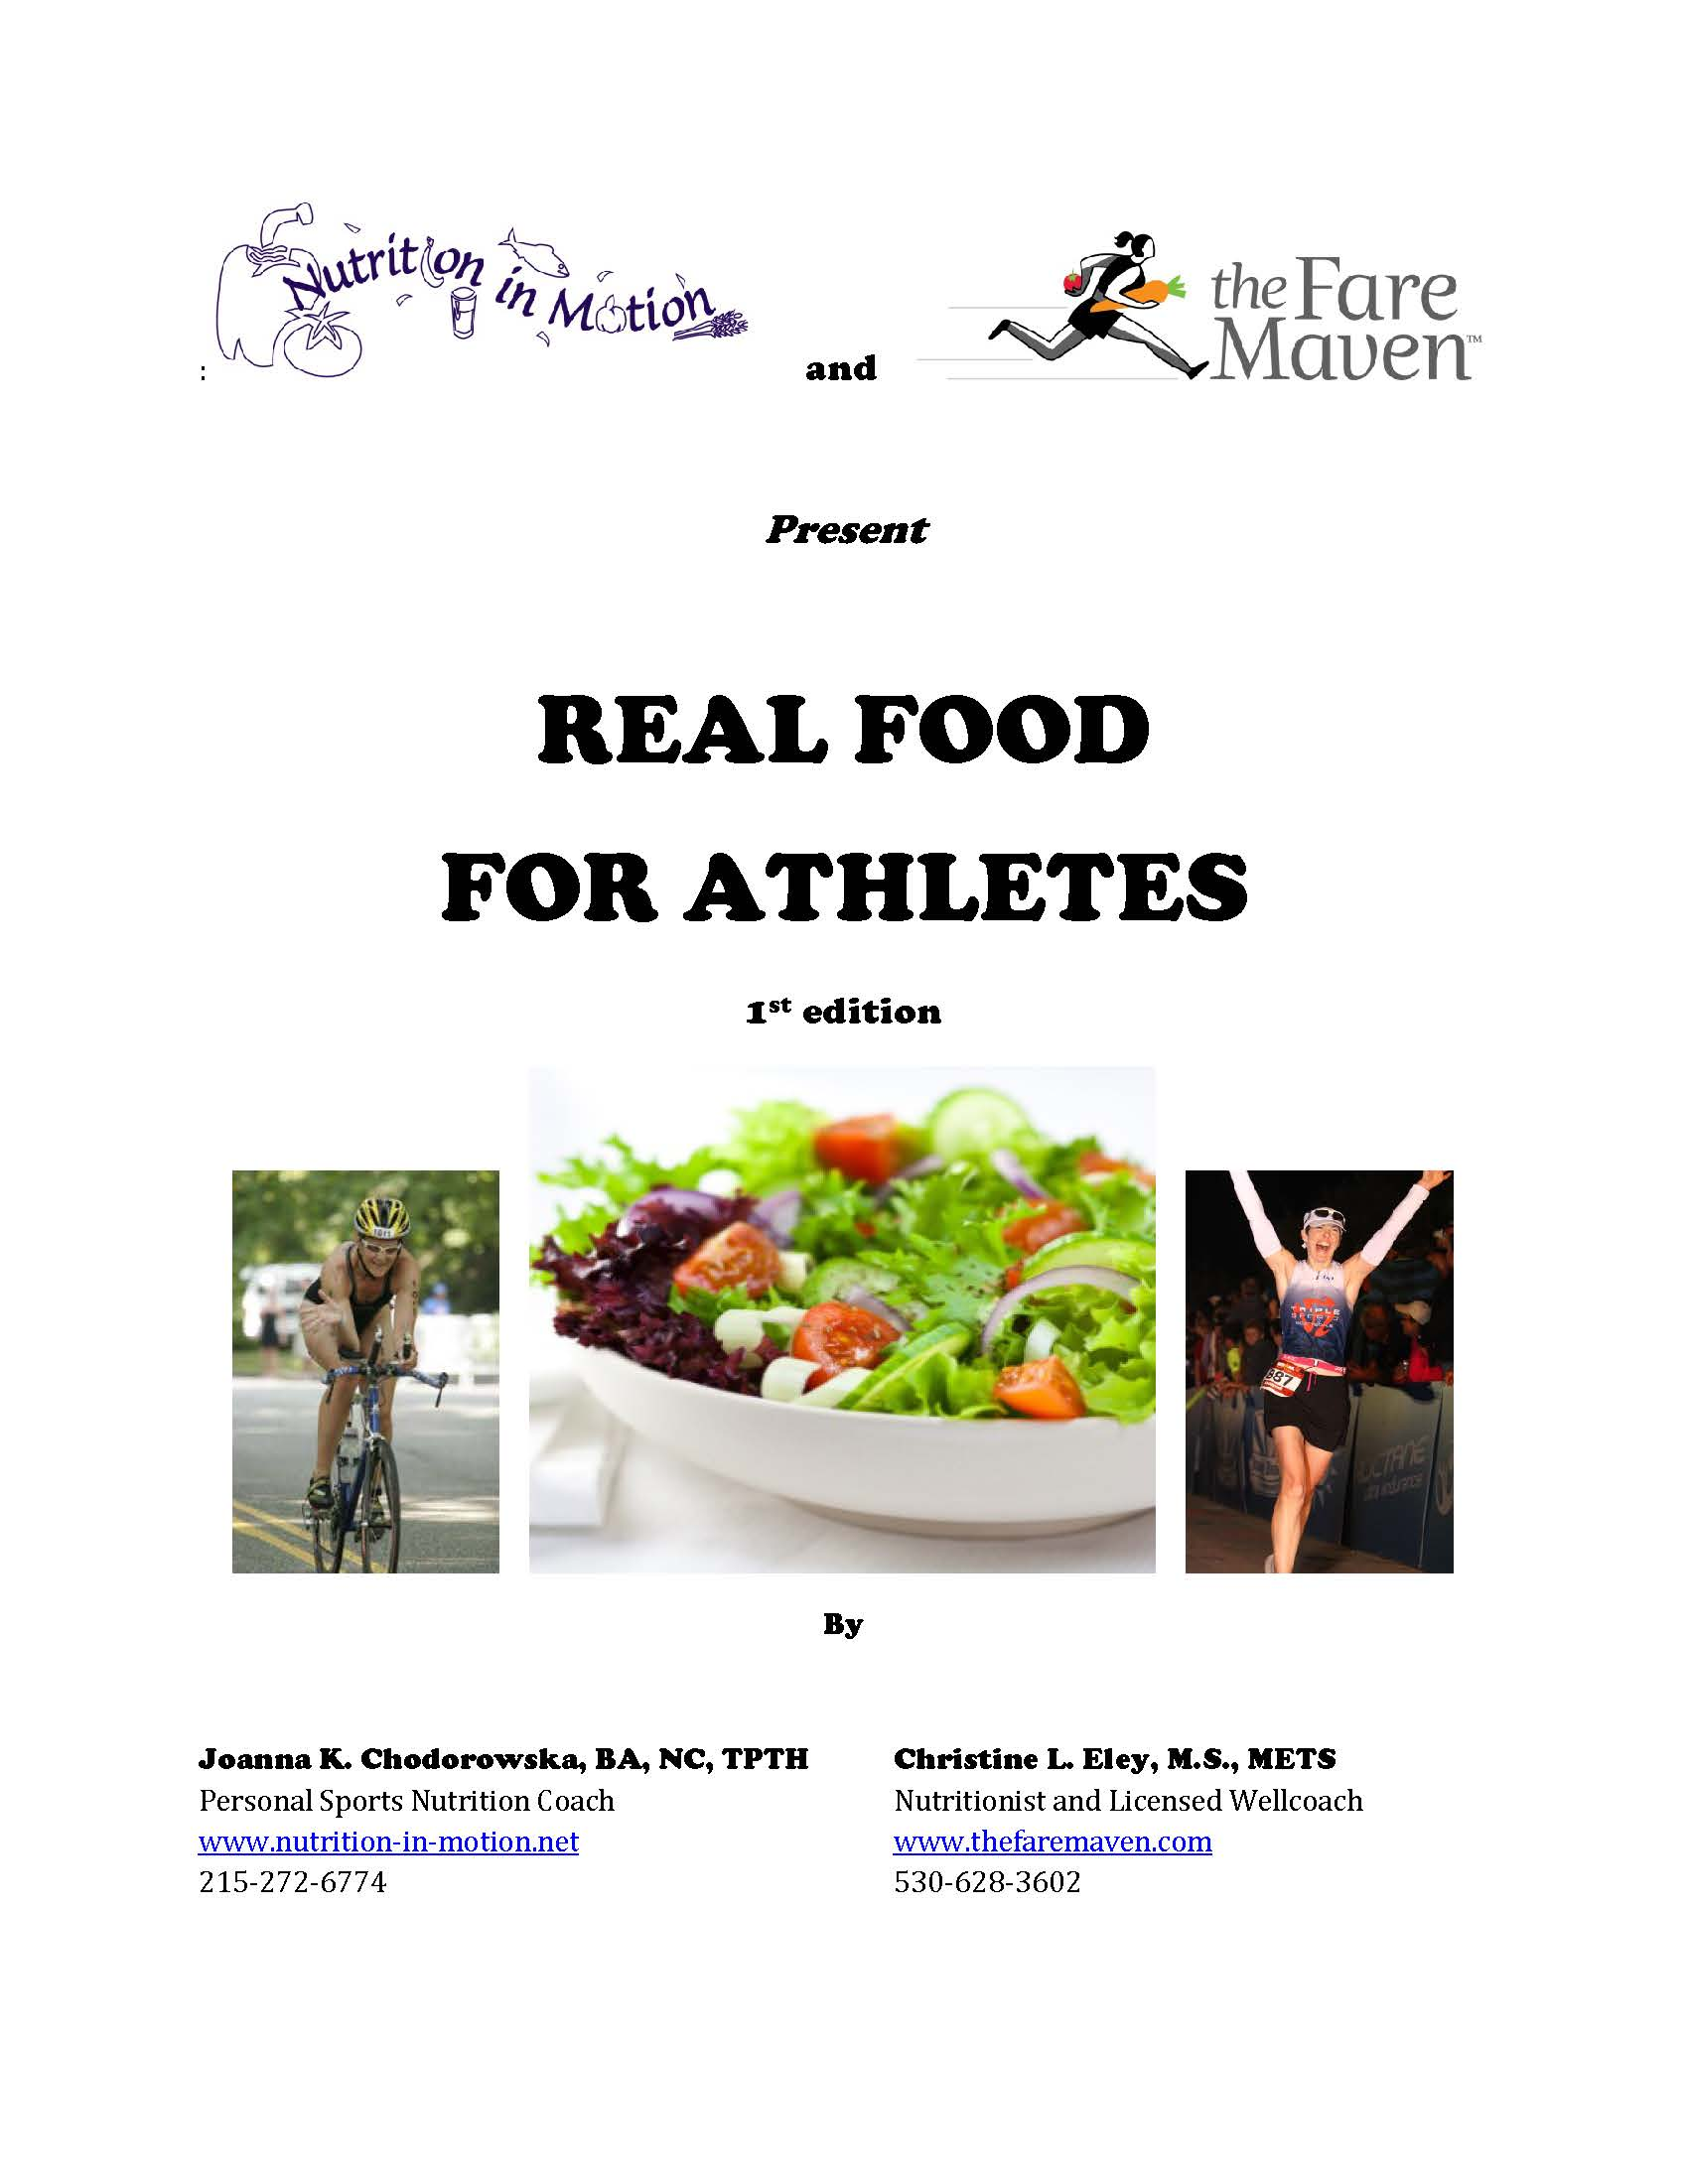 Real Food For Athletes book is here!